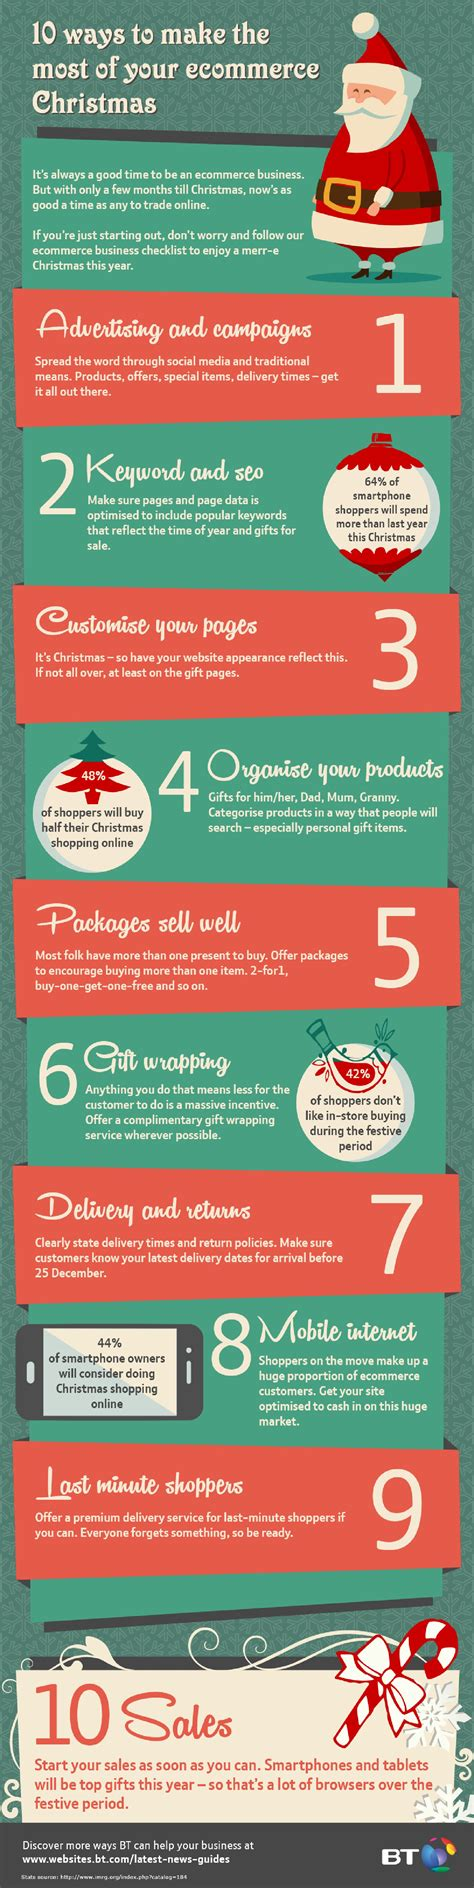 infographic 10 ecommerce tips for christmas mycustomer